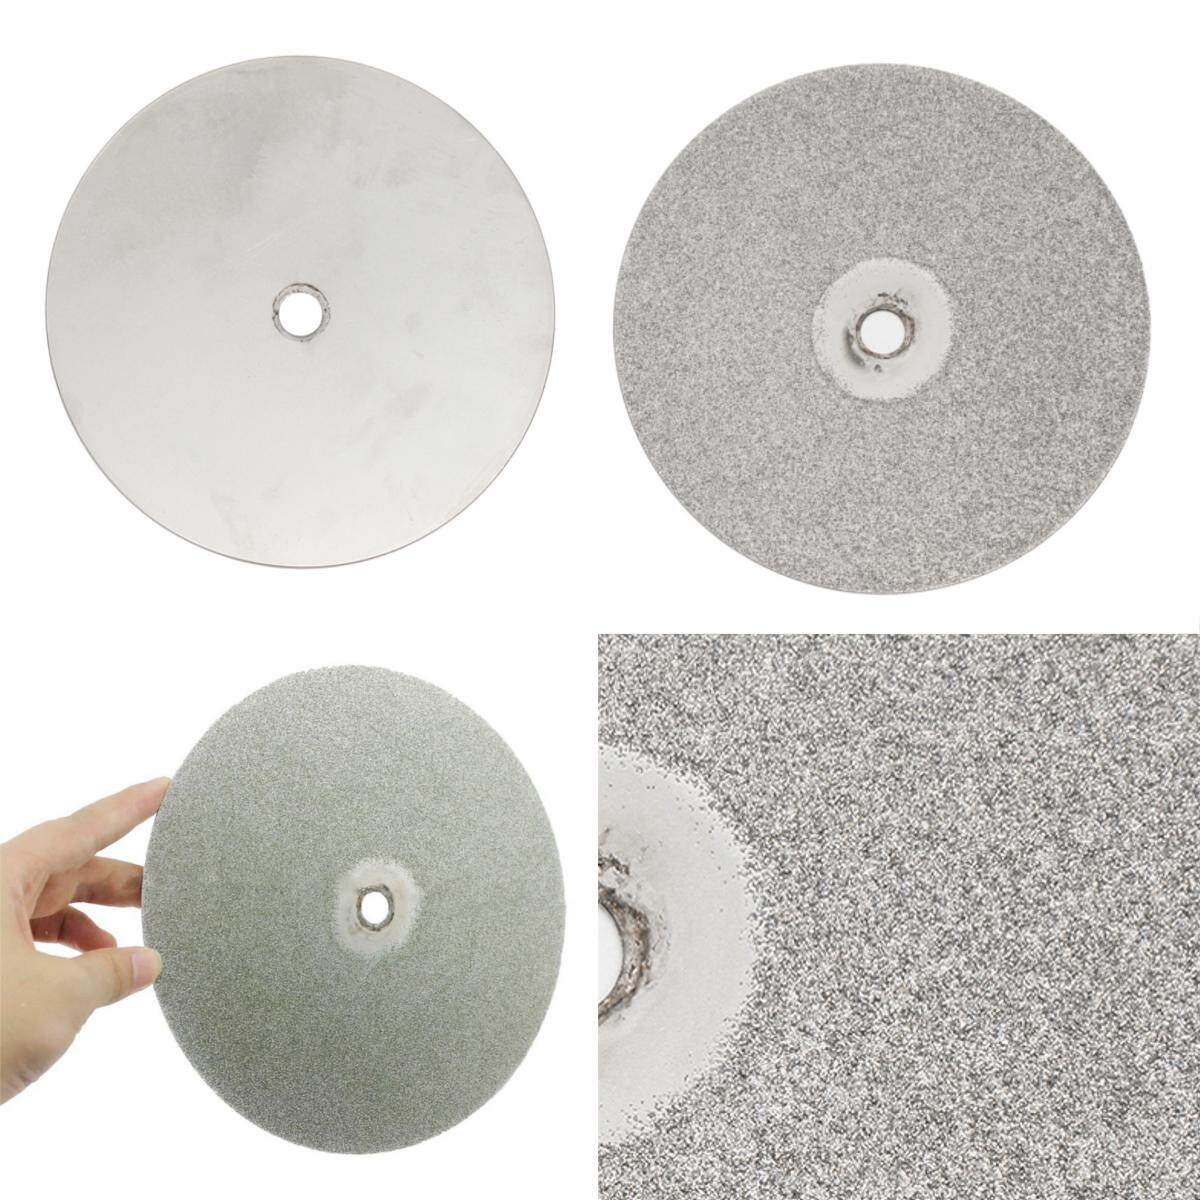 8 Inch Grit 80# Diamond Coated Flat Lap Wheel Jewelry Lapidary Polishing Disc